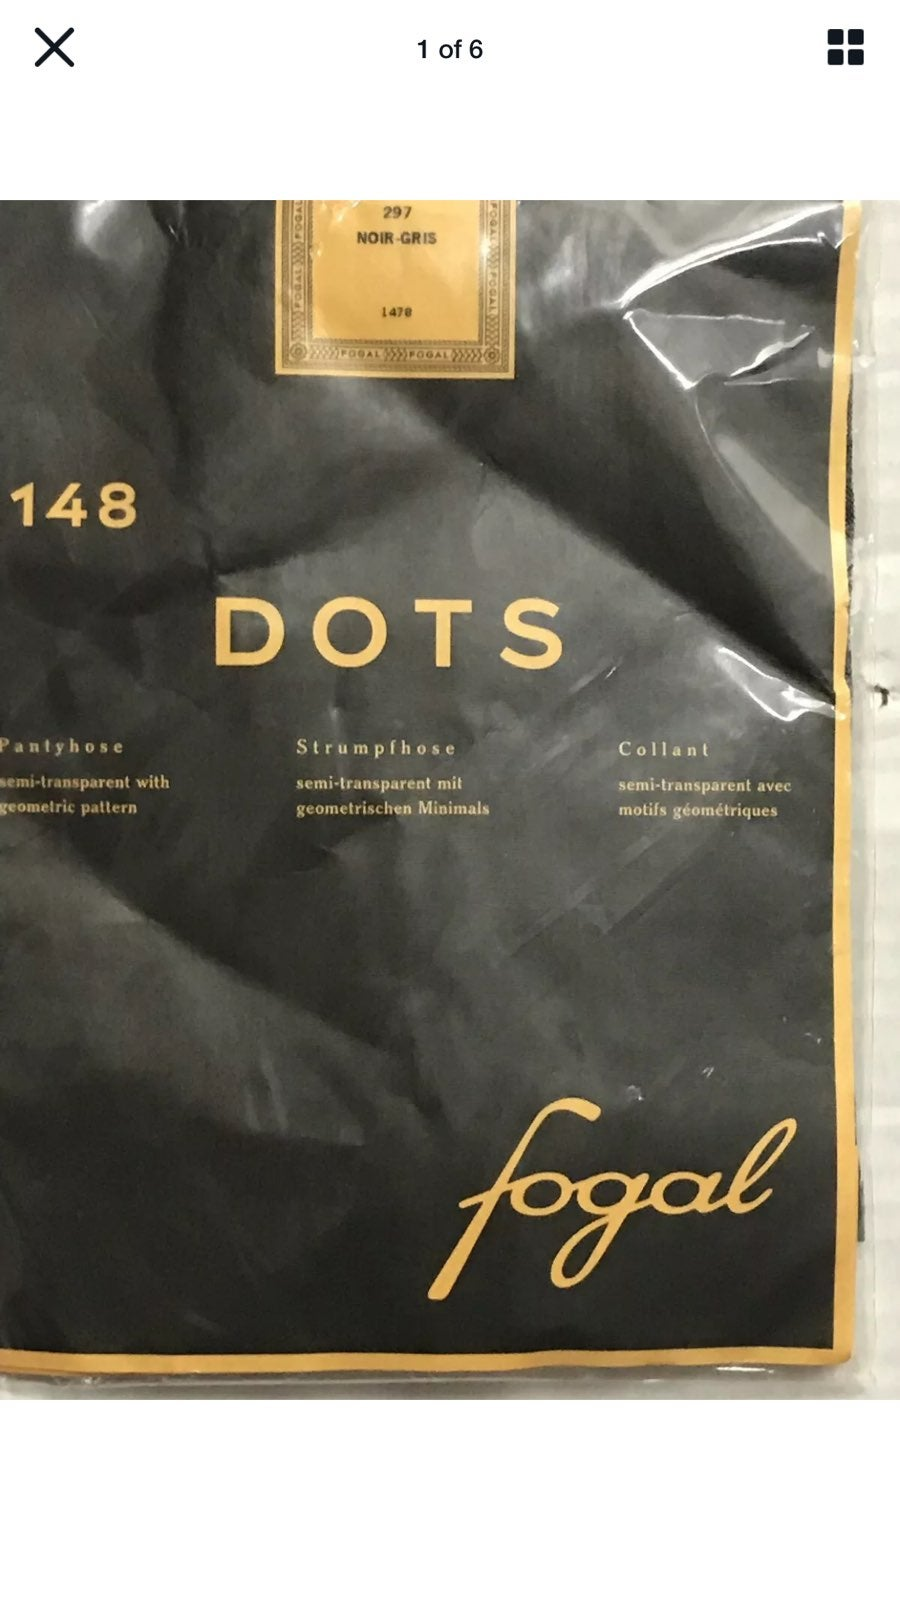 FOGAL DOTS 148 NOIR GRIS SHINY EFFECT